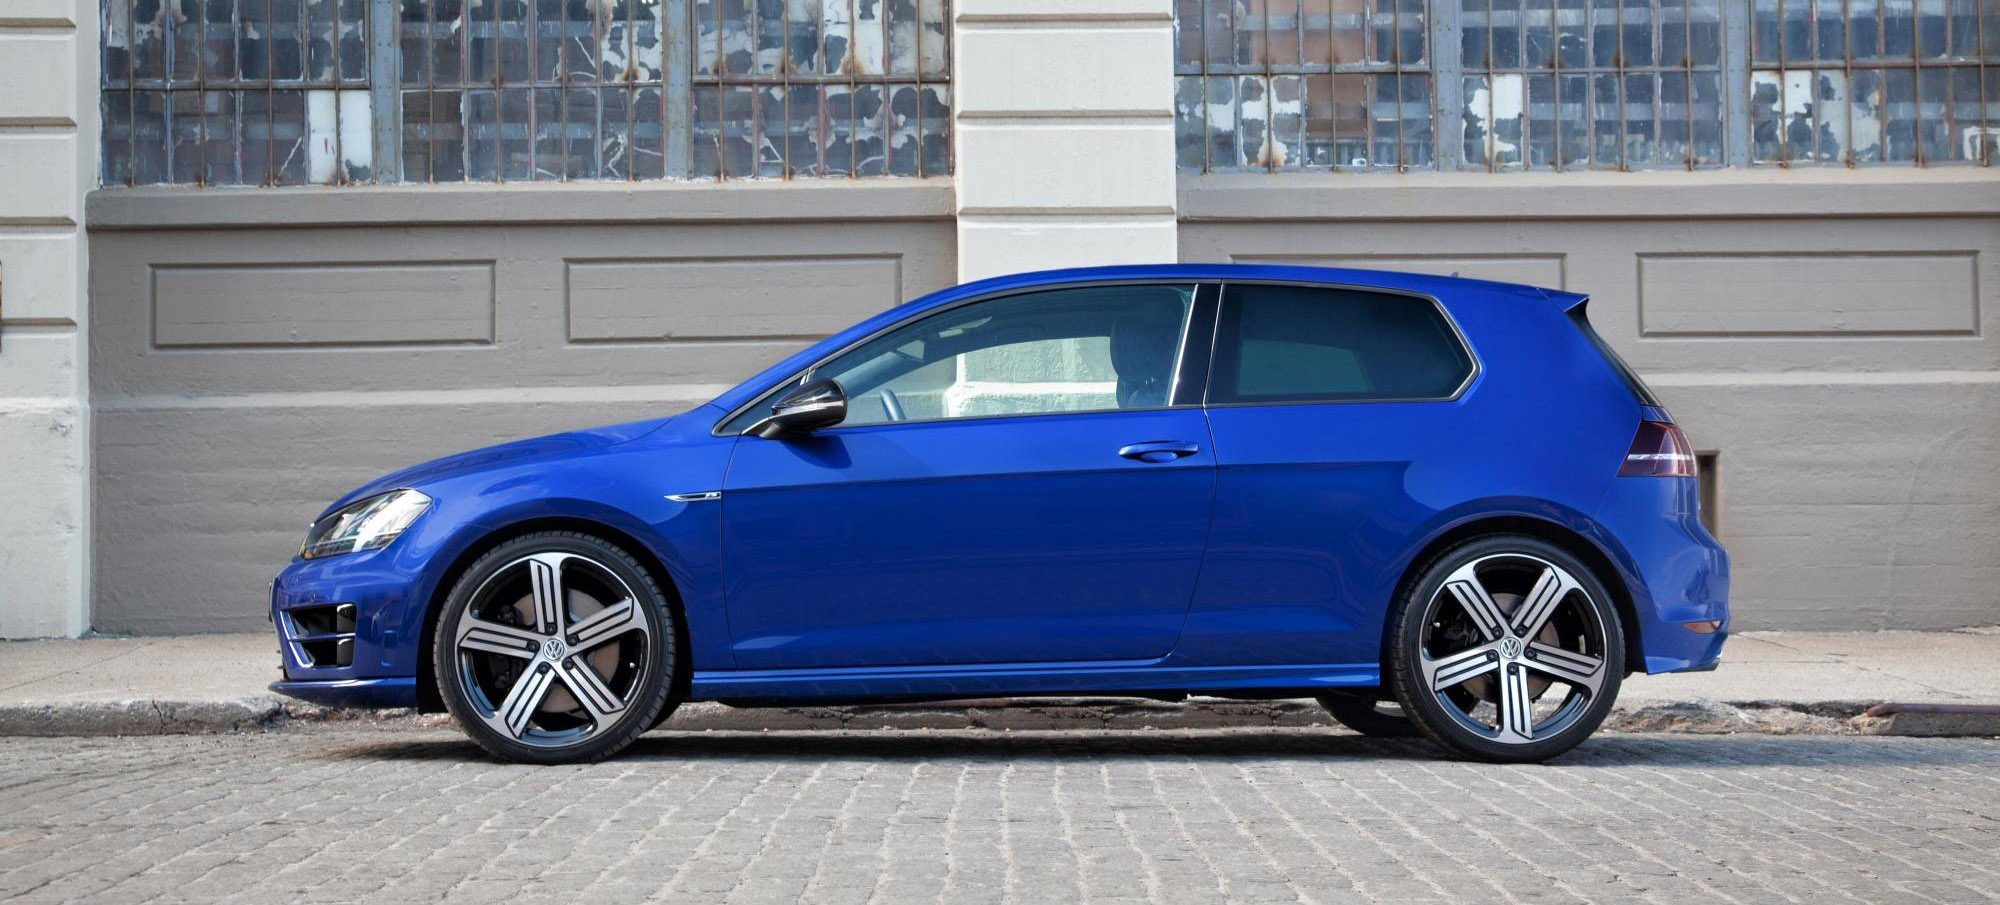 Volkswagen Golf R R Sport 2 Door